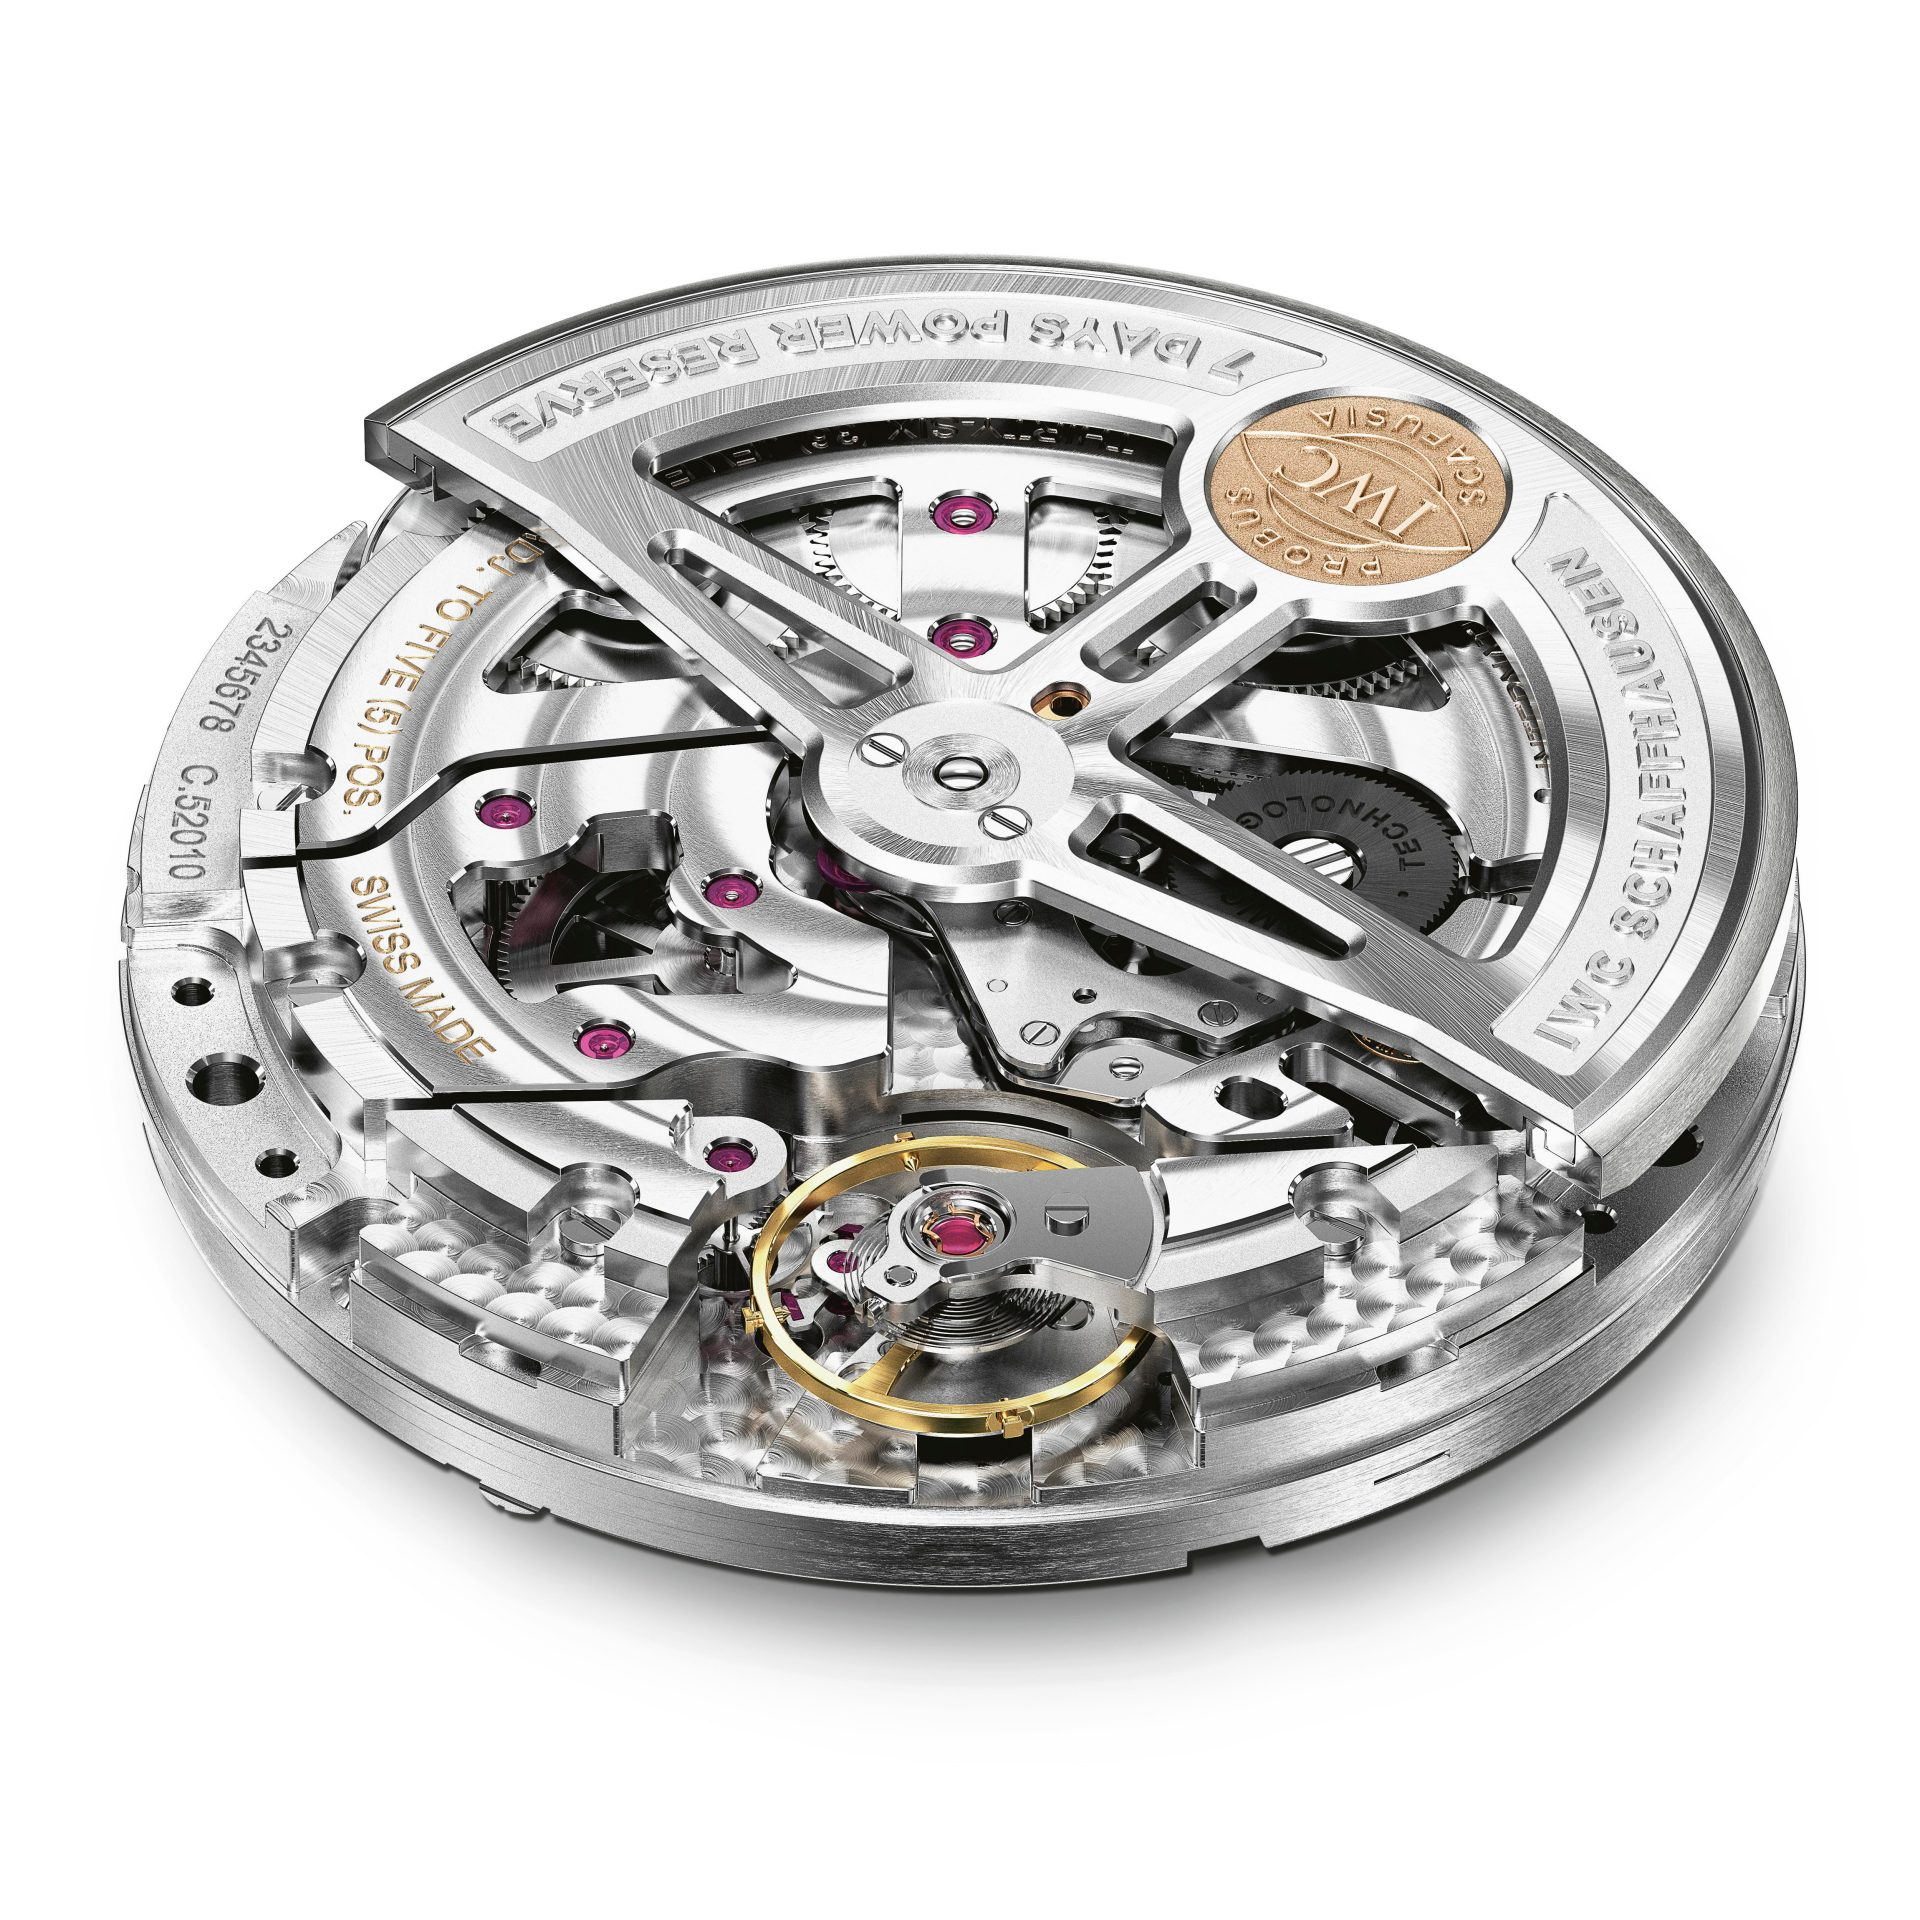 PELLATON'S INGENIOUS AUTOMATIC MEETS STATE-OF-THE-ART ENGINEERING